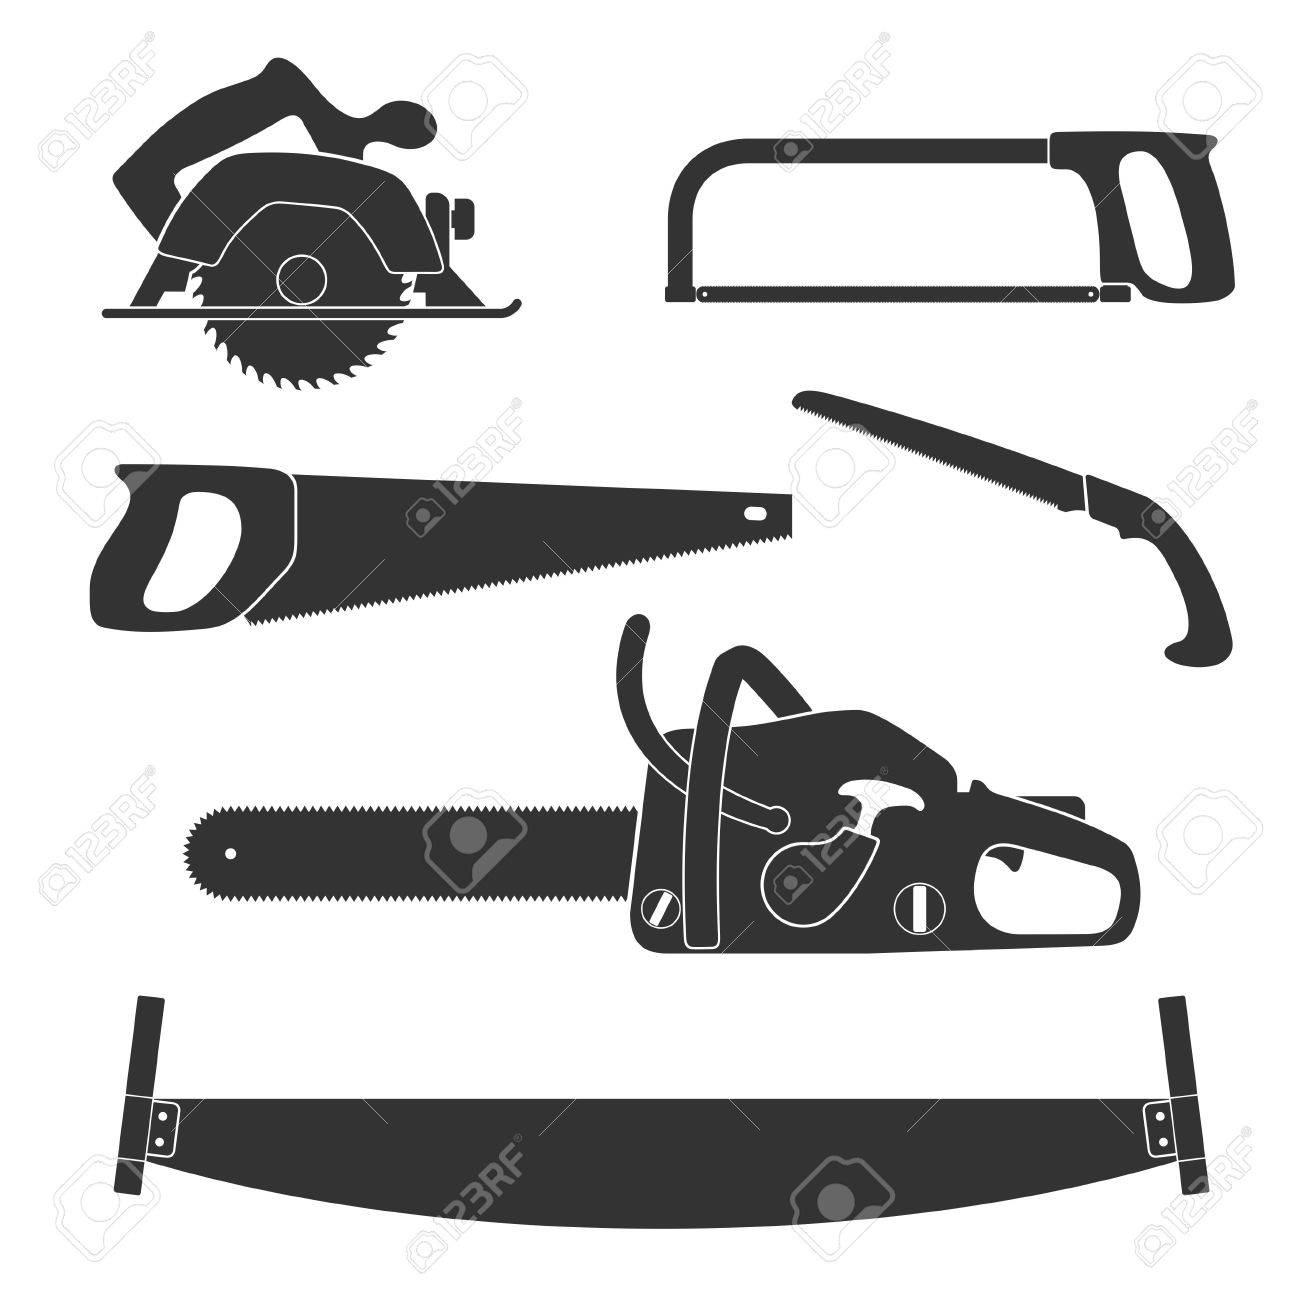 Lumberjack And Woodworking Tools Icons Isolated On White Background